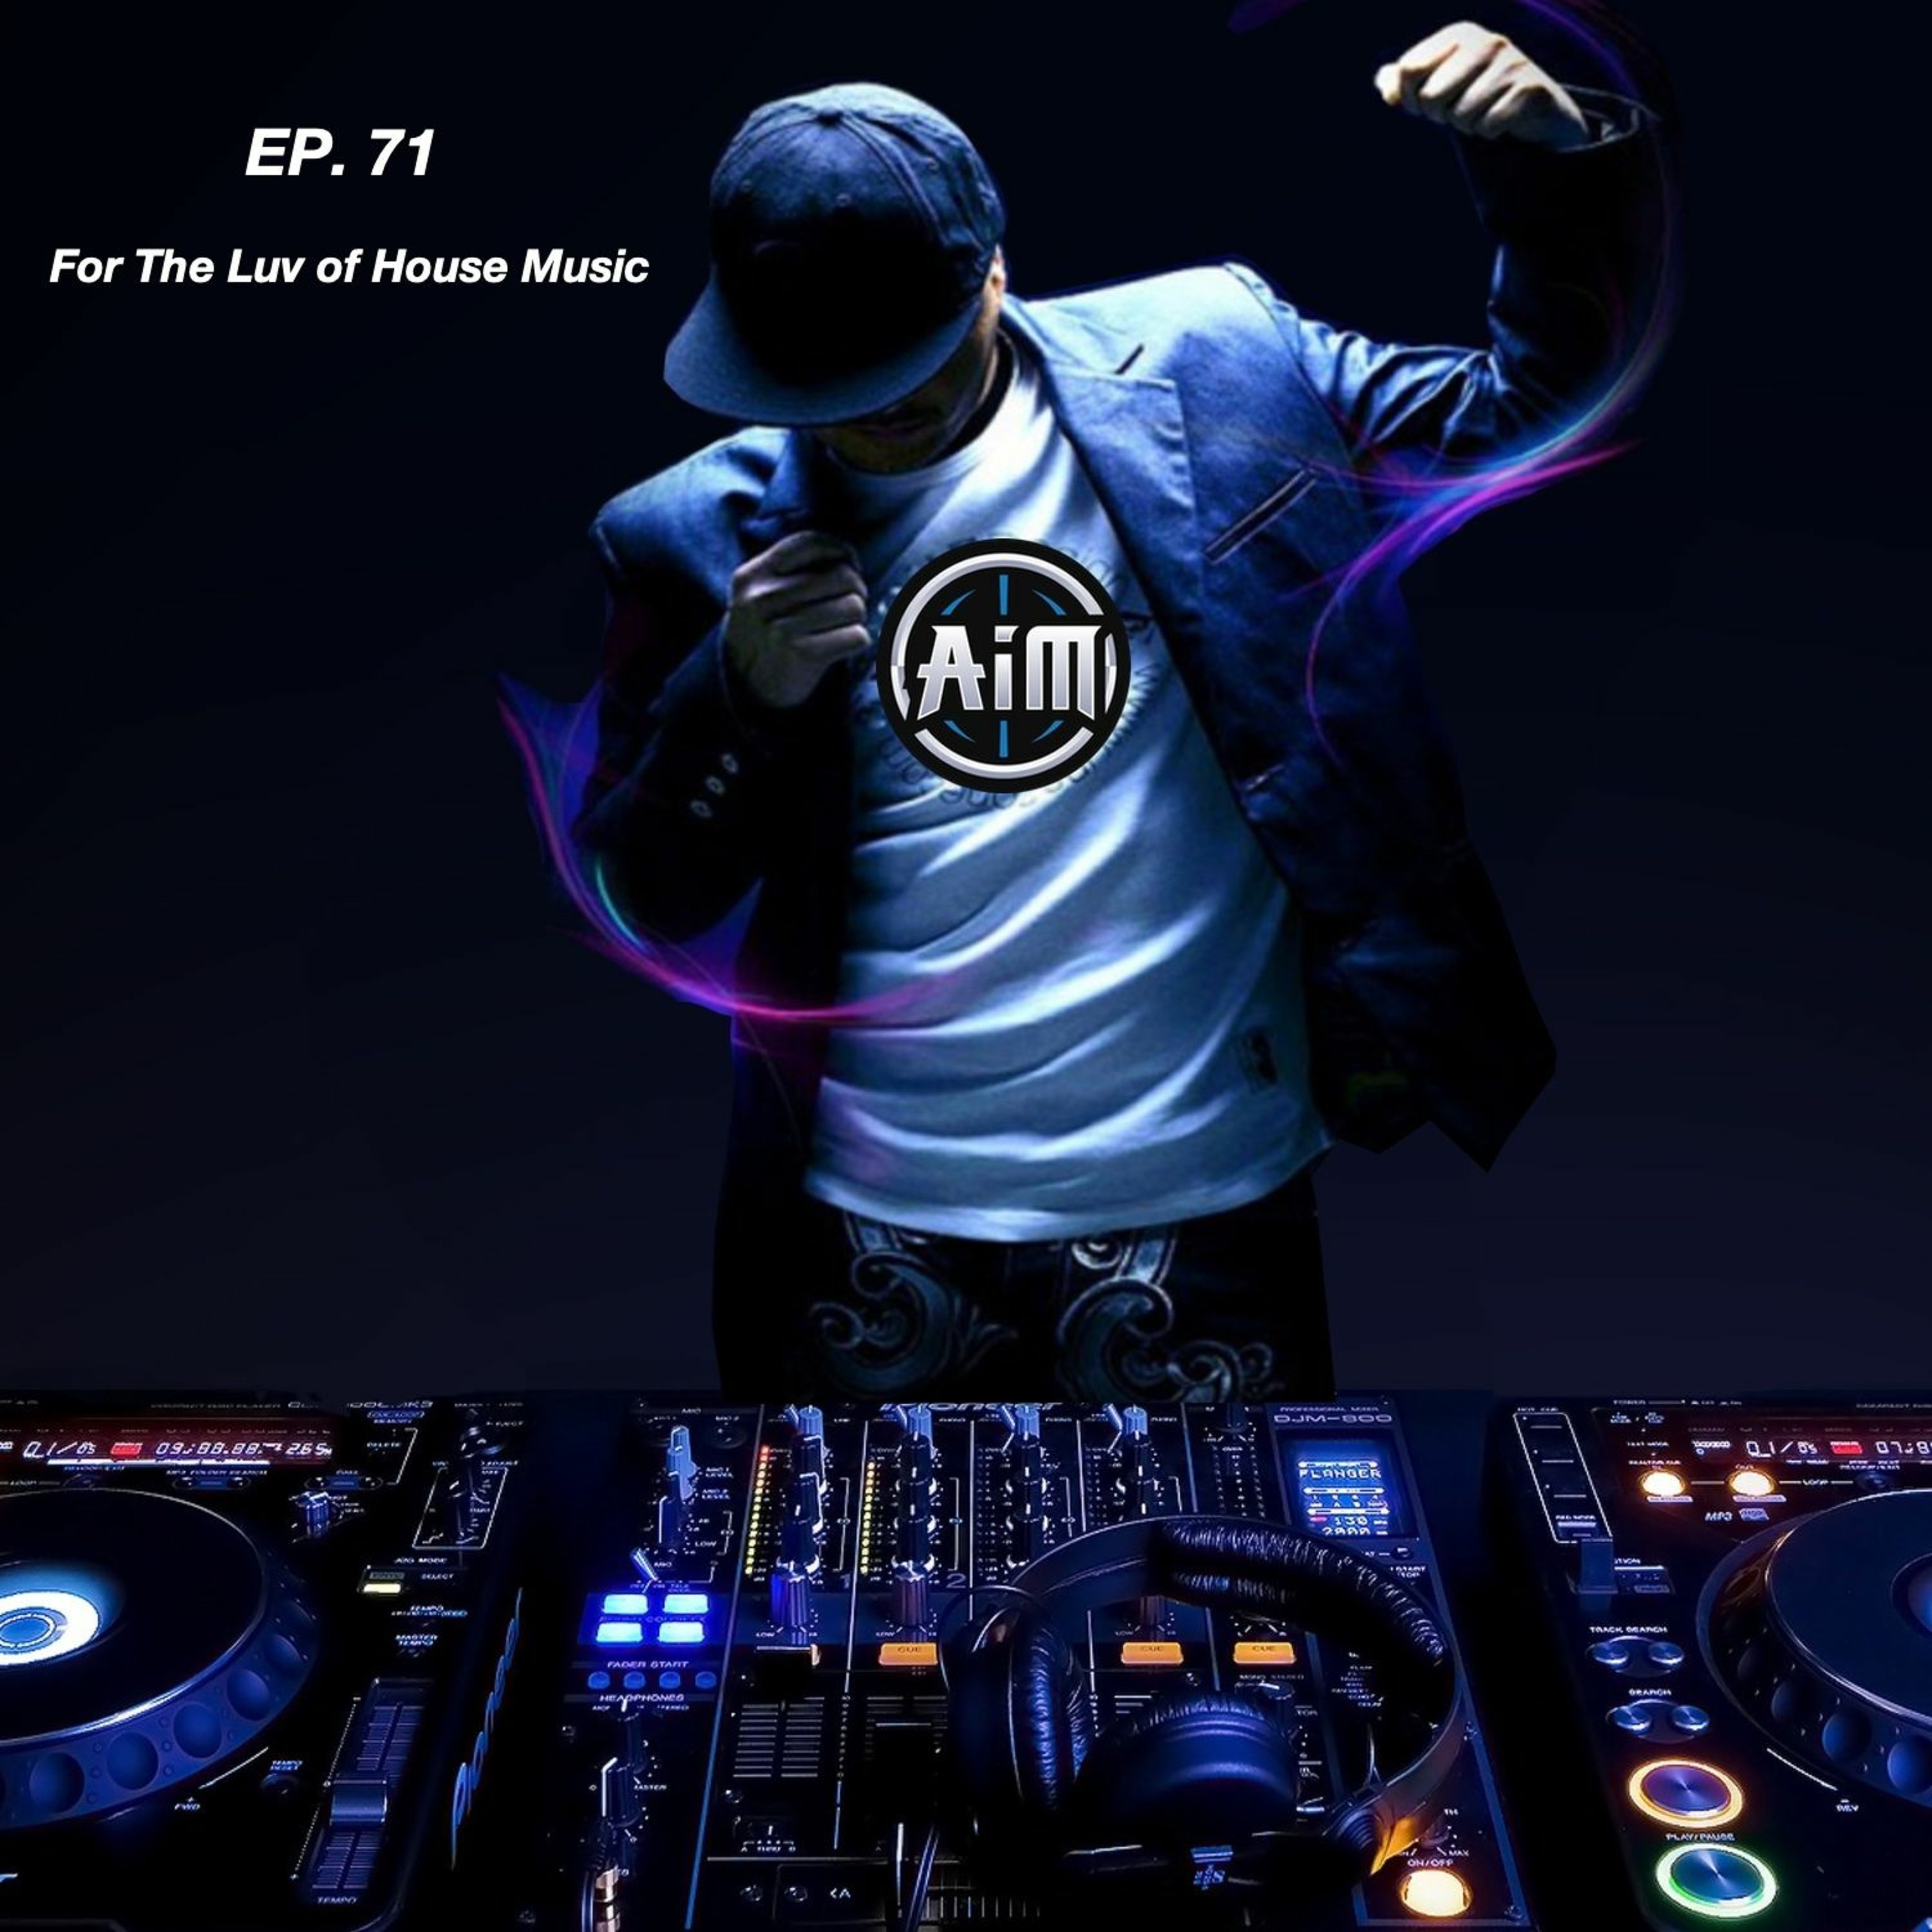 EP.71 For The Luv Of House Music